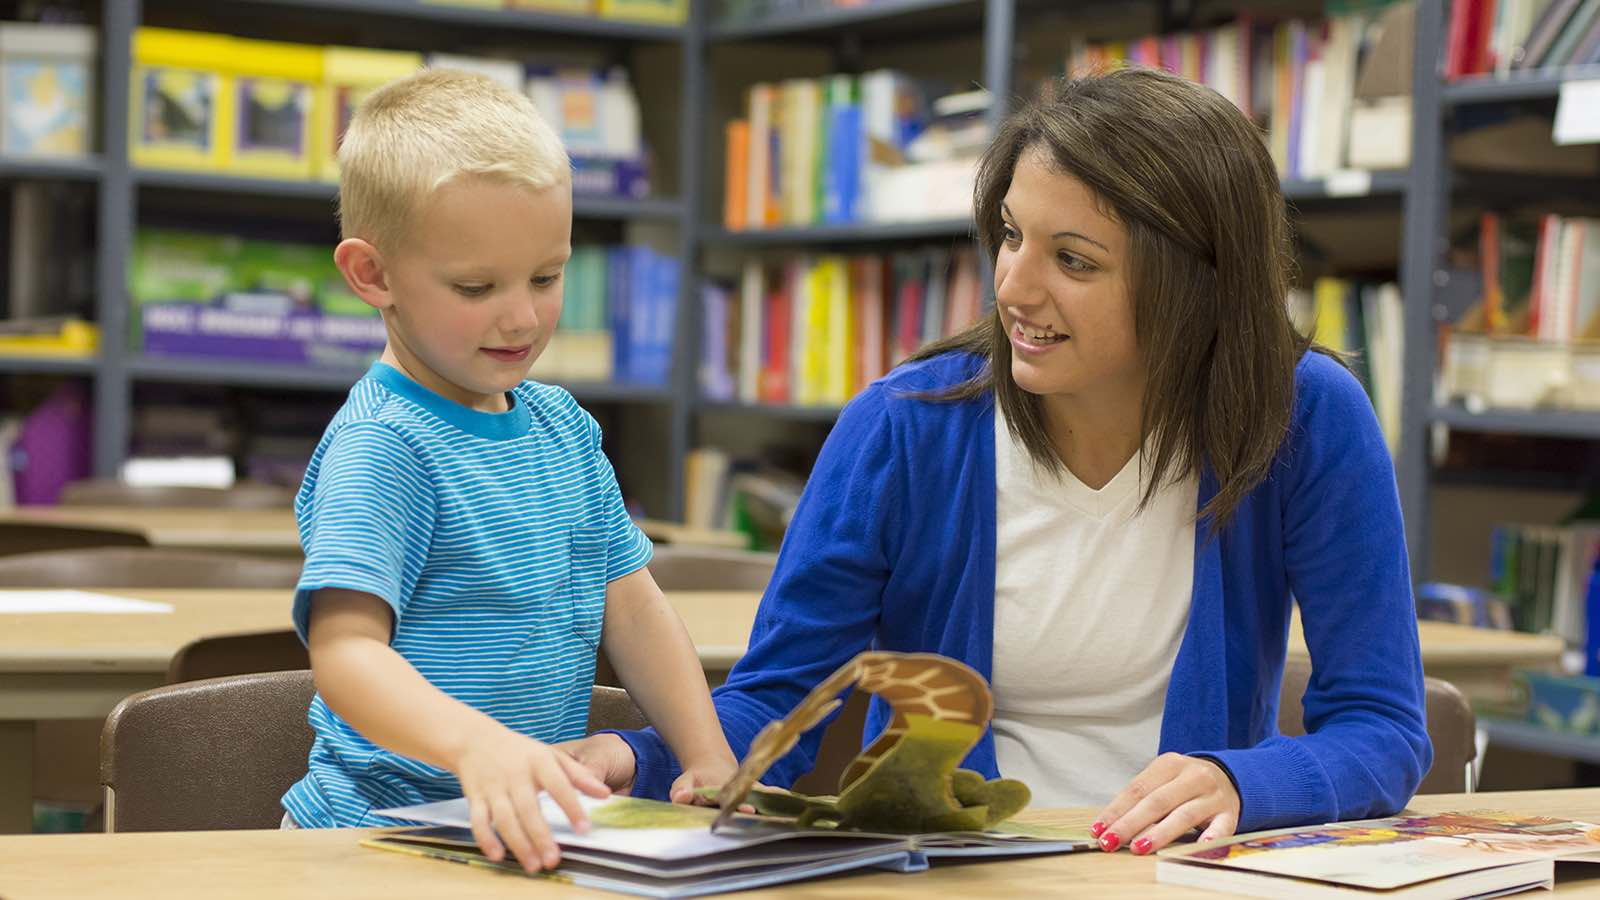 Female teacher reading a pop up book with a blonde elementary school student